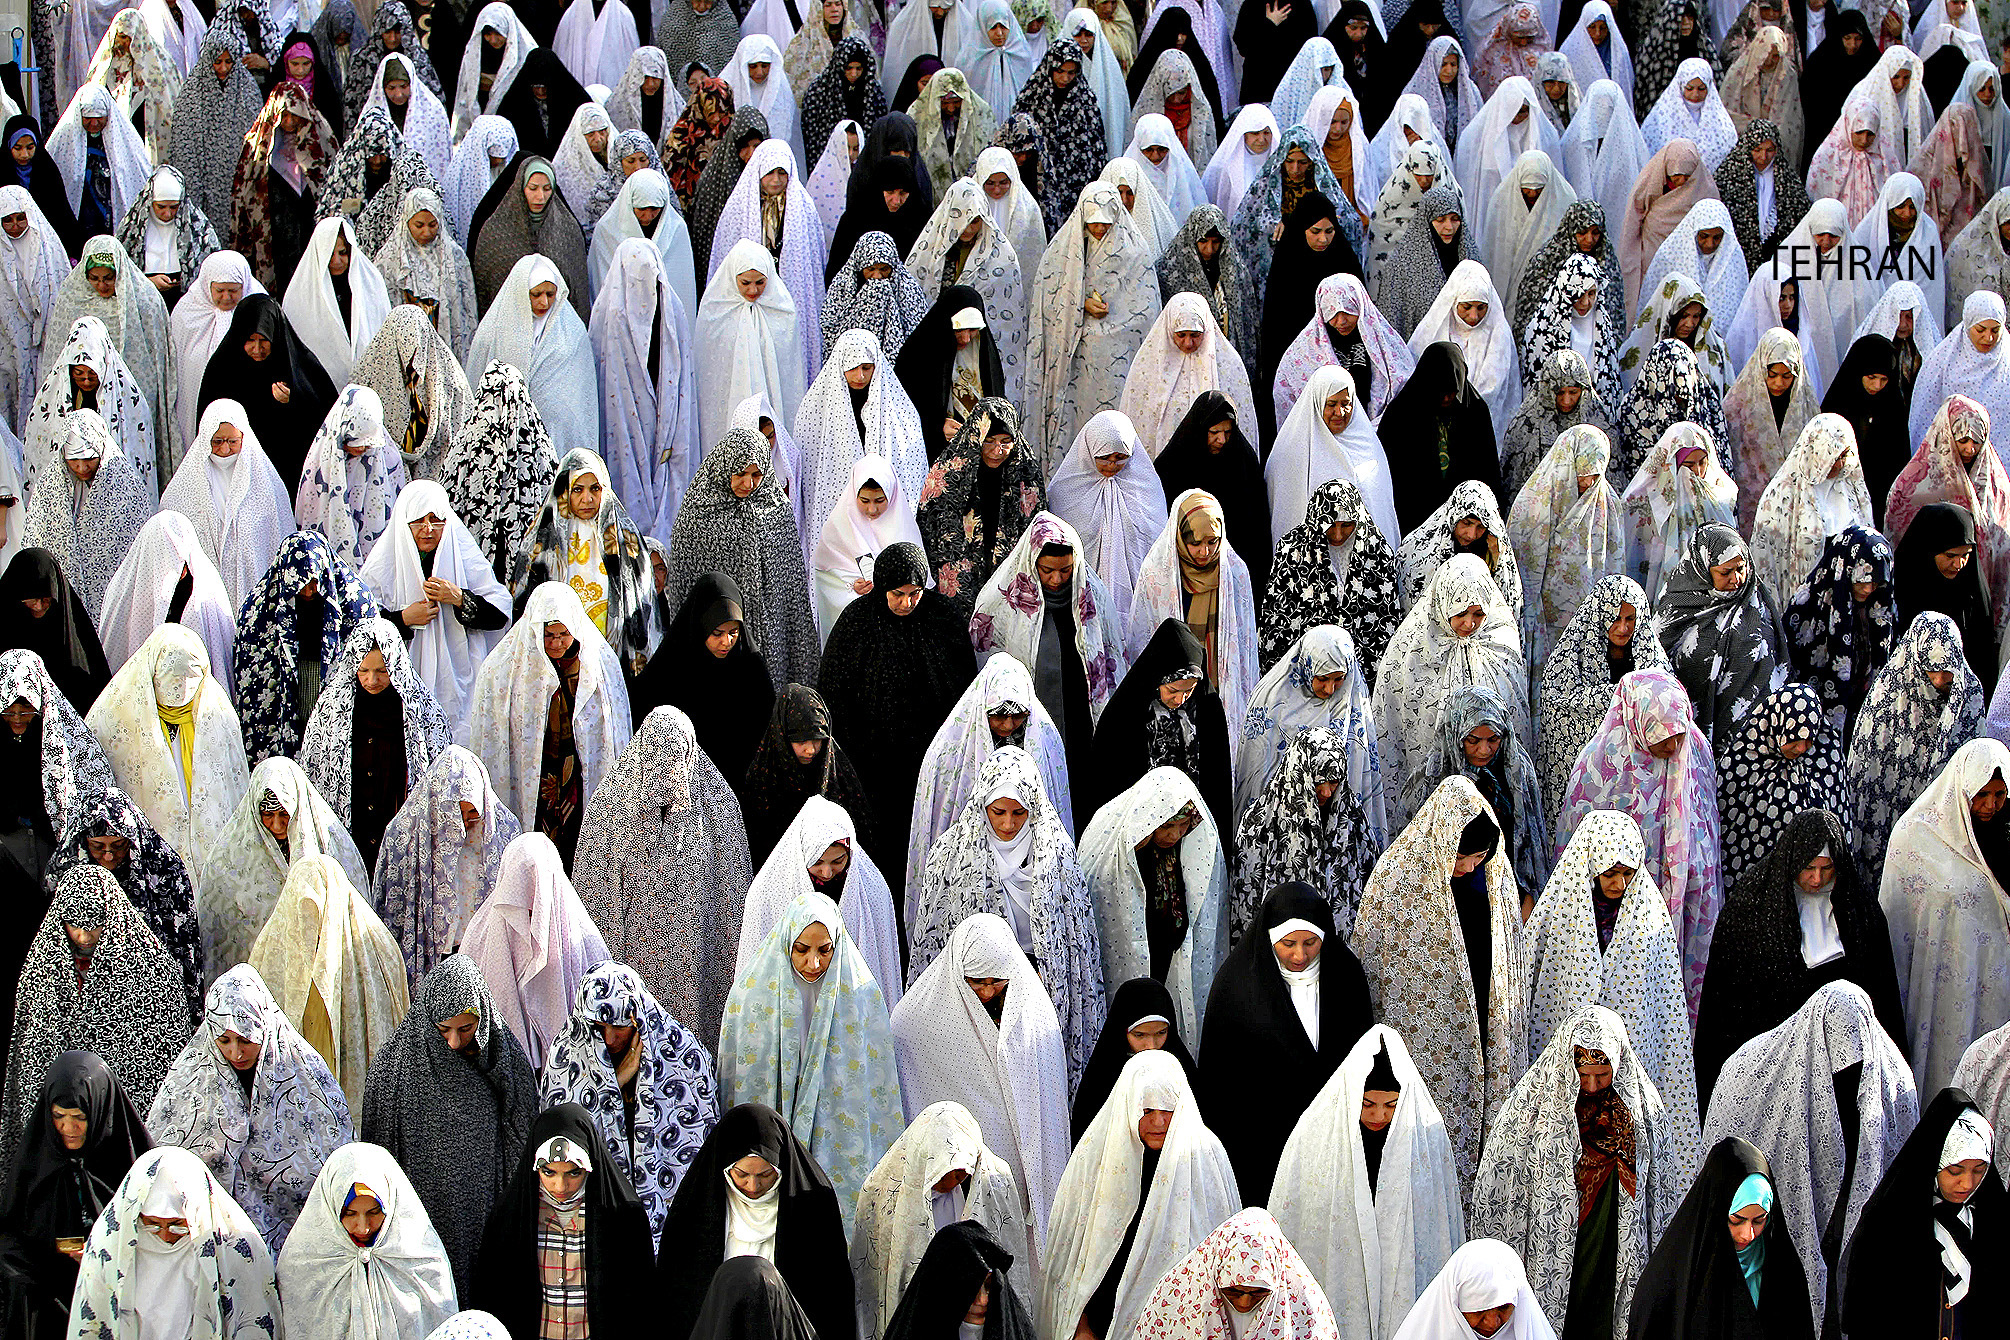 Iranian women pray during the Eid al-Fitr prayer in Tehran, Iran, Friday, Aug. 9, 2013. The Eid al-Fitr celebration marks the end of the holy month of Ramadan, during which Muslims all over the world fast from sunrise to sunset. (AP Photo/Ebrahim Noroozi)